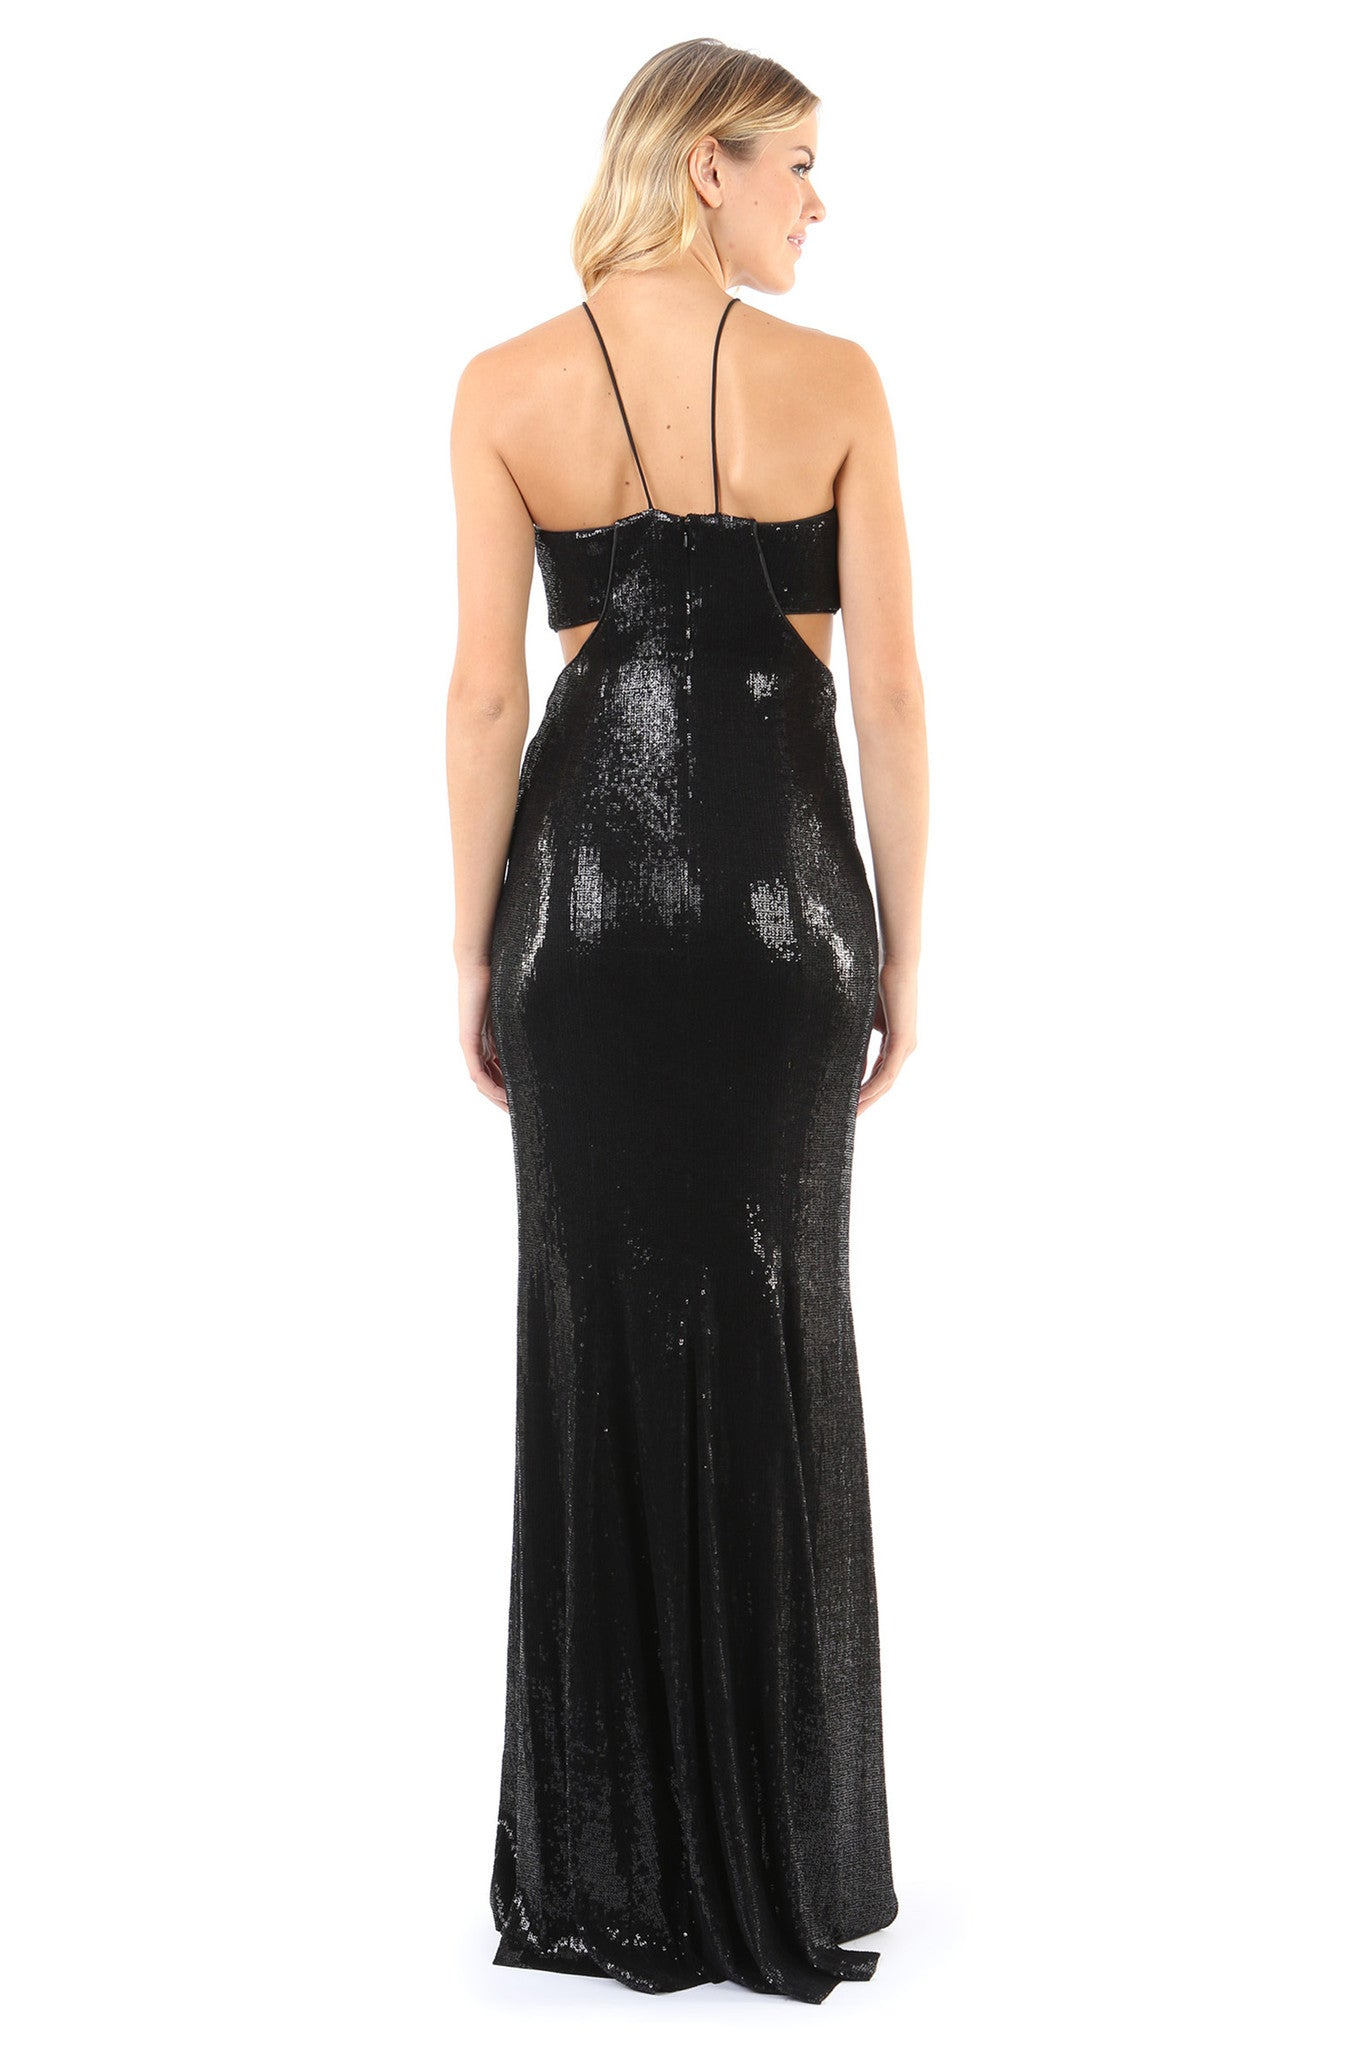 Jay Godfrey Black Sequin Gown with Cut-Outs - Back View